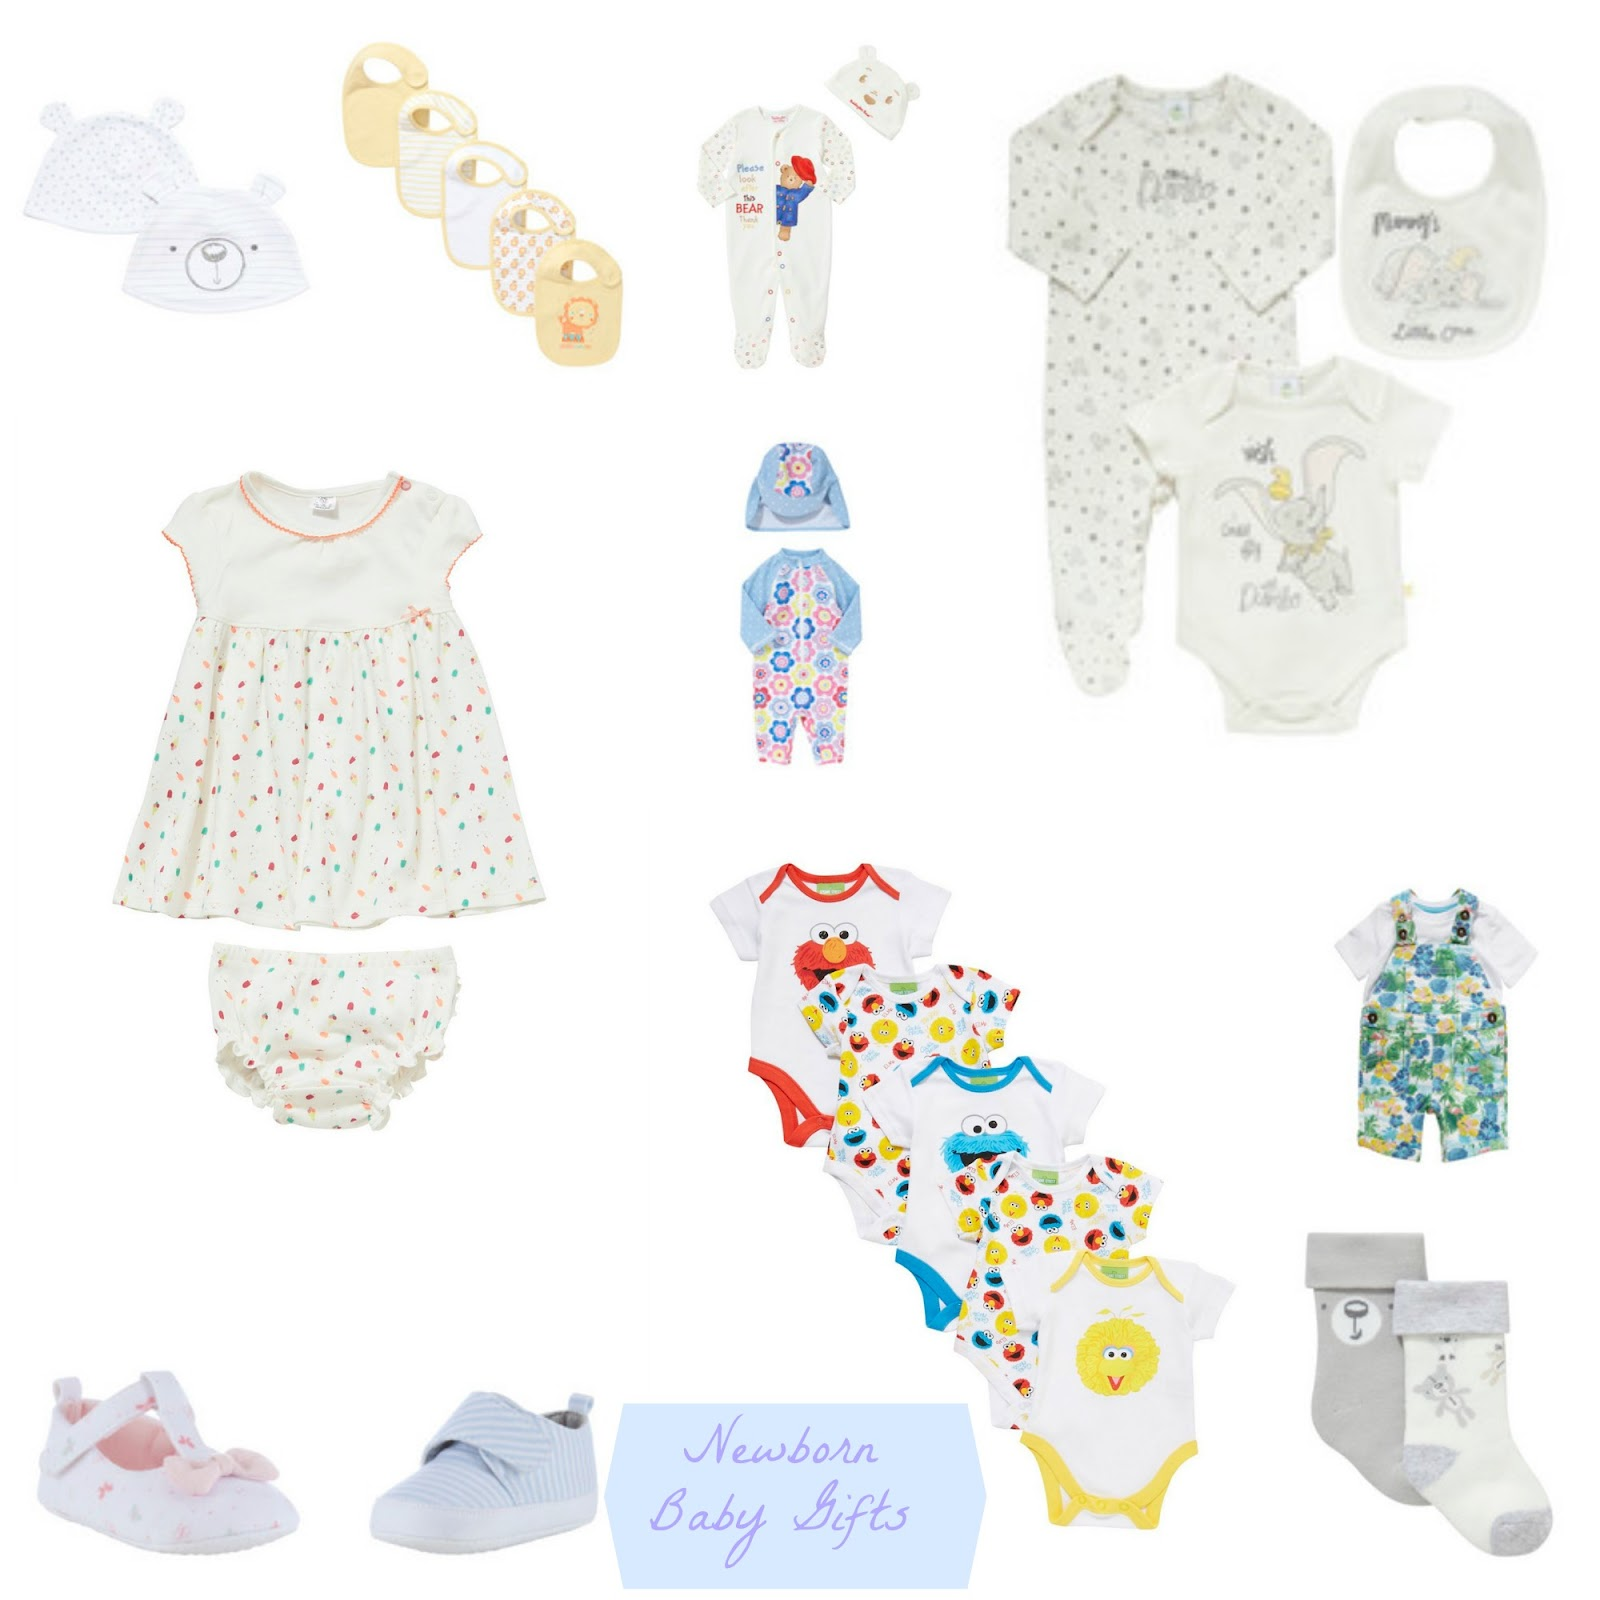 , Clothing Gift Guide for Newborn Babies